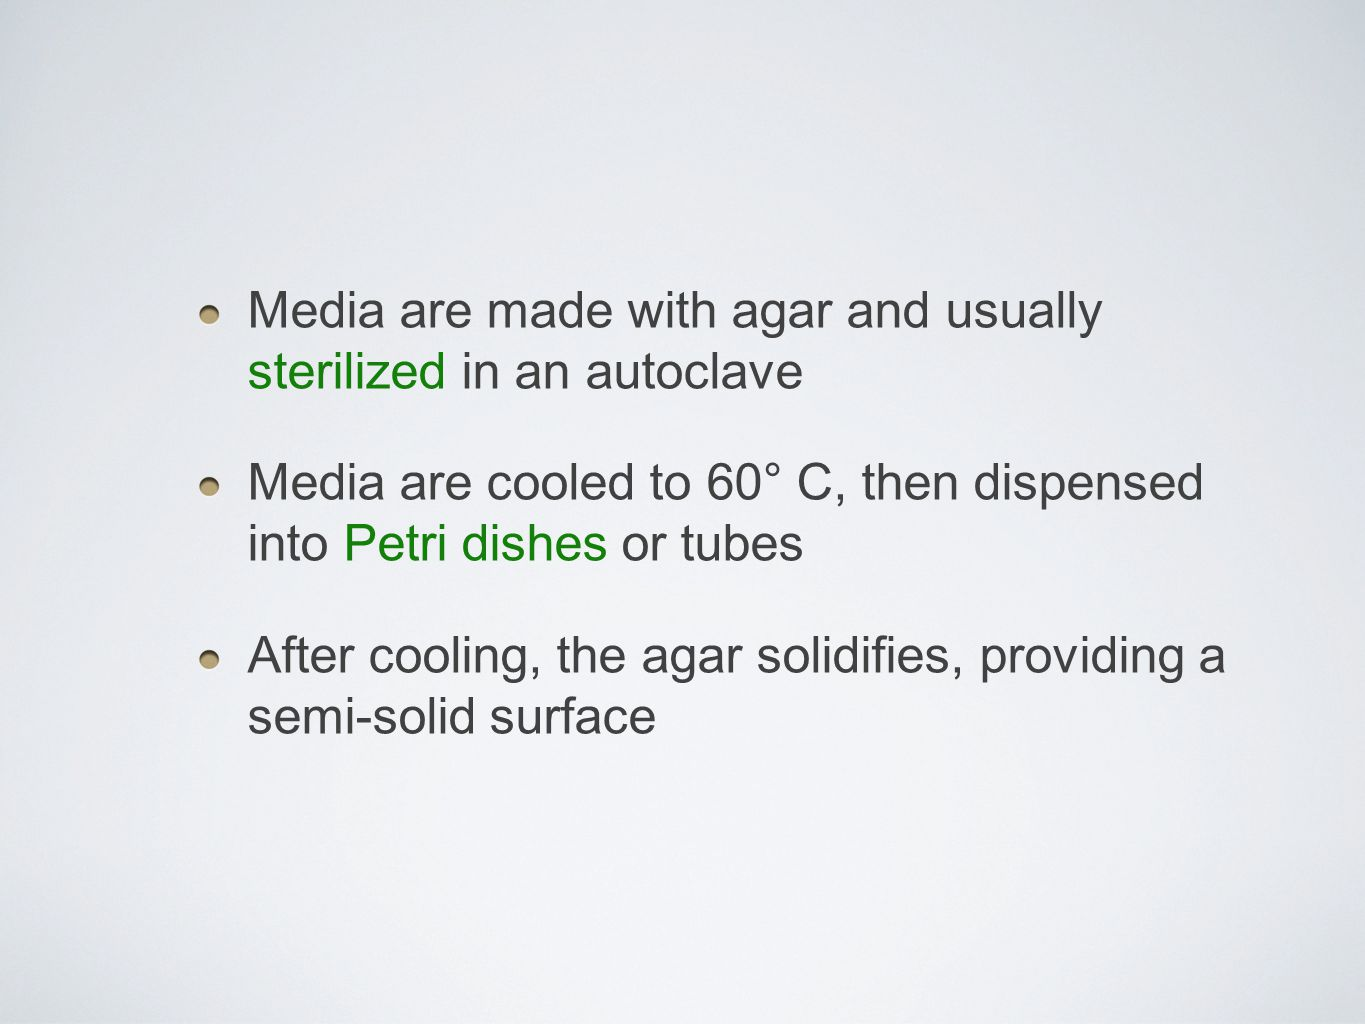 Media are made with agar and usually sterilized in an autoclave